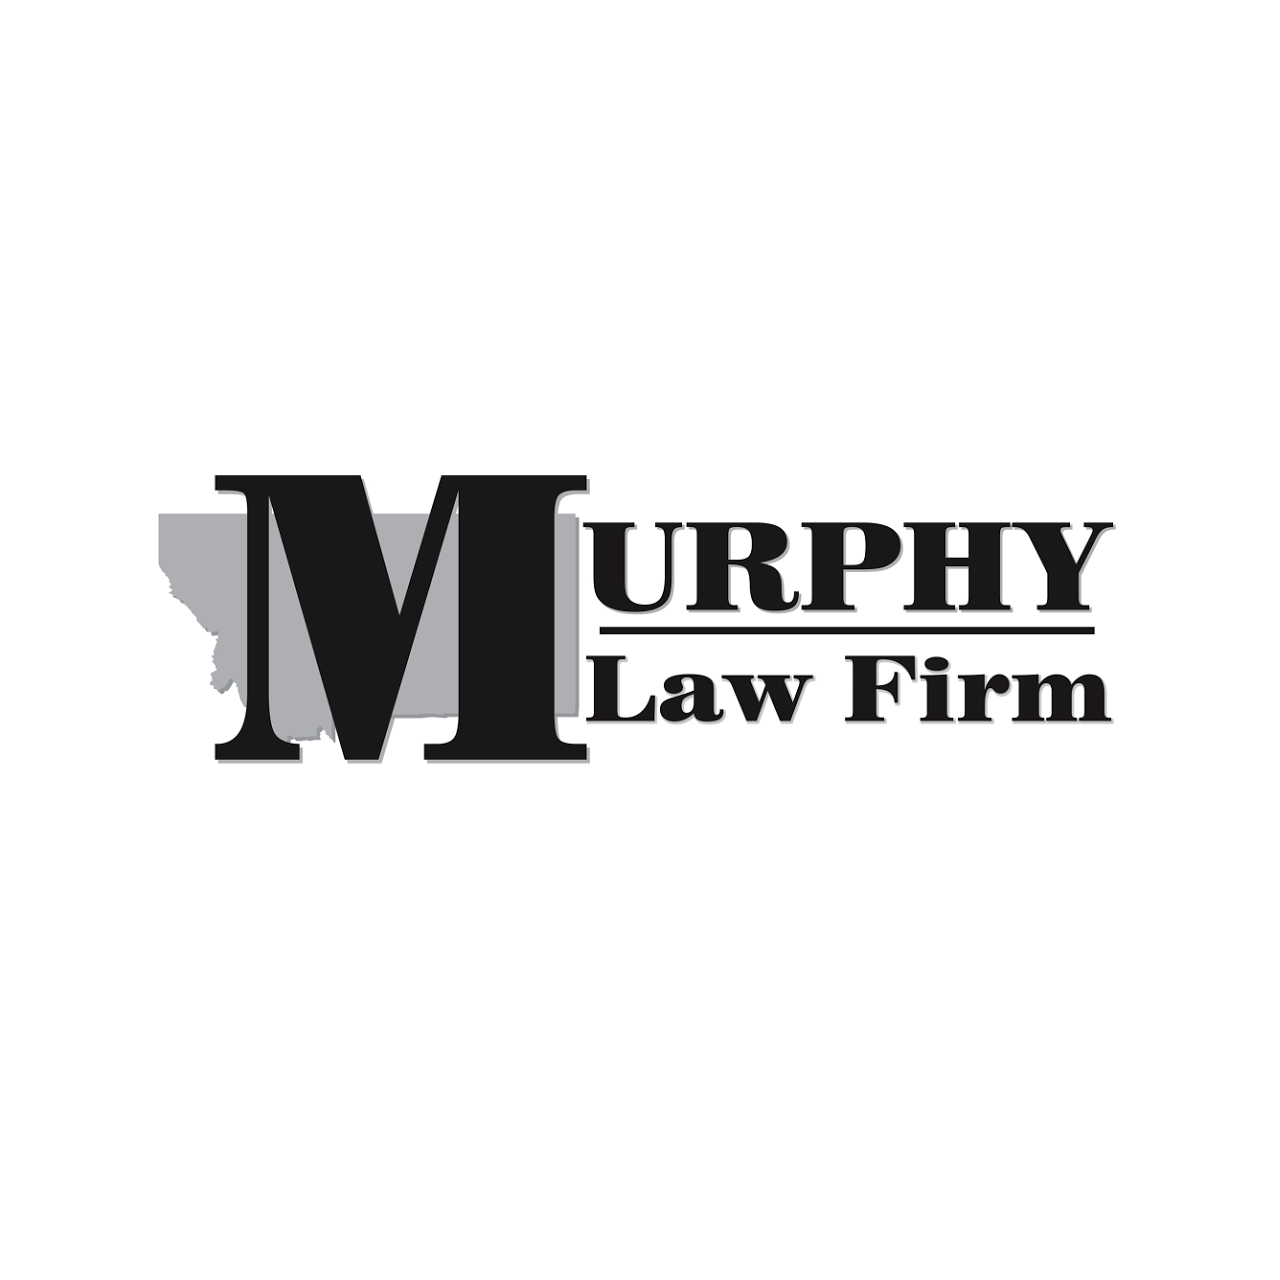 Murphy Law Firm Coupons near me in Great Falls | 8coupons